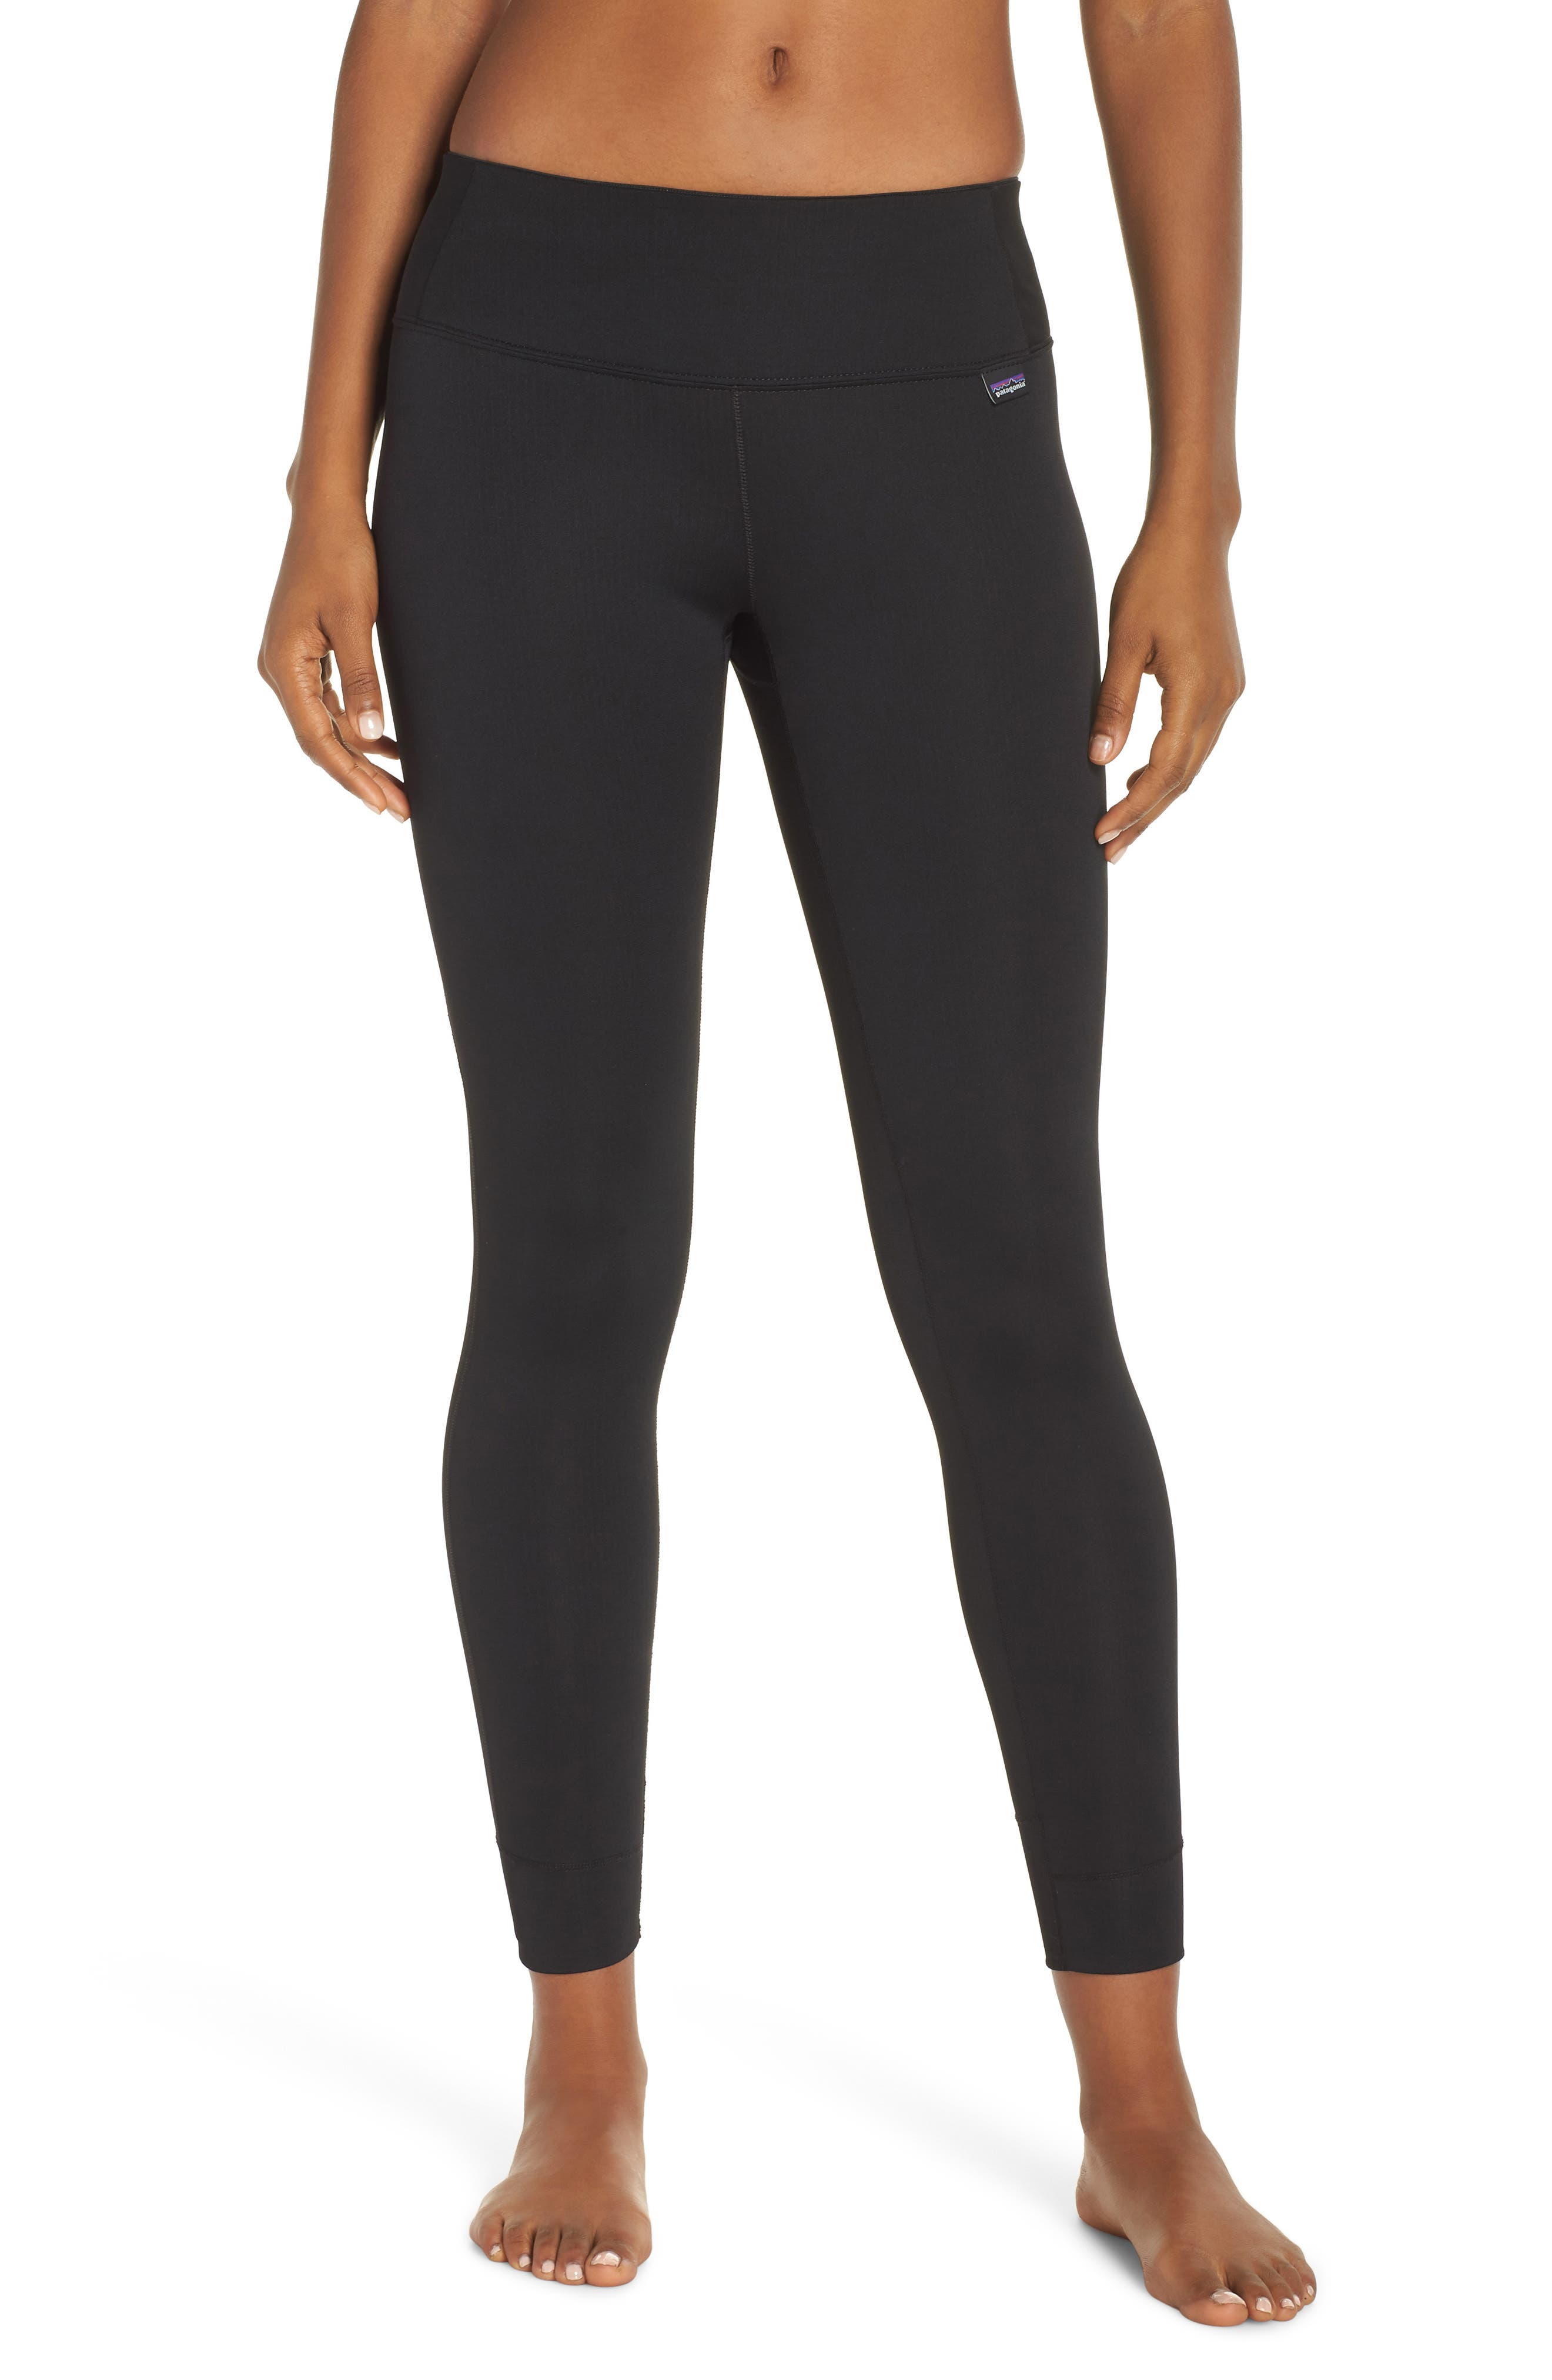 PATAGONIA Capilene Midweight Base Layer Tights, Main, color, BLACK